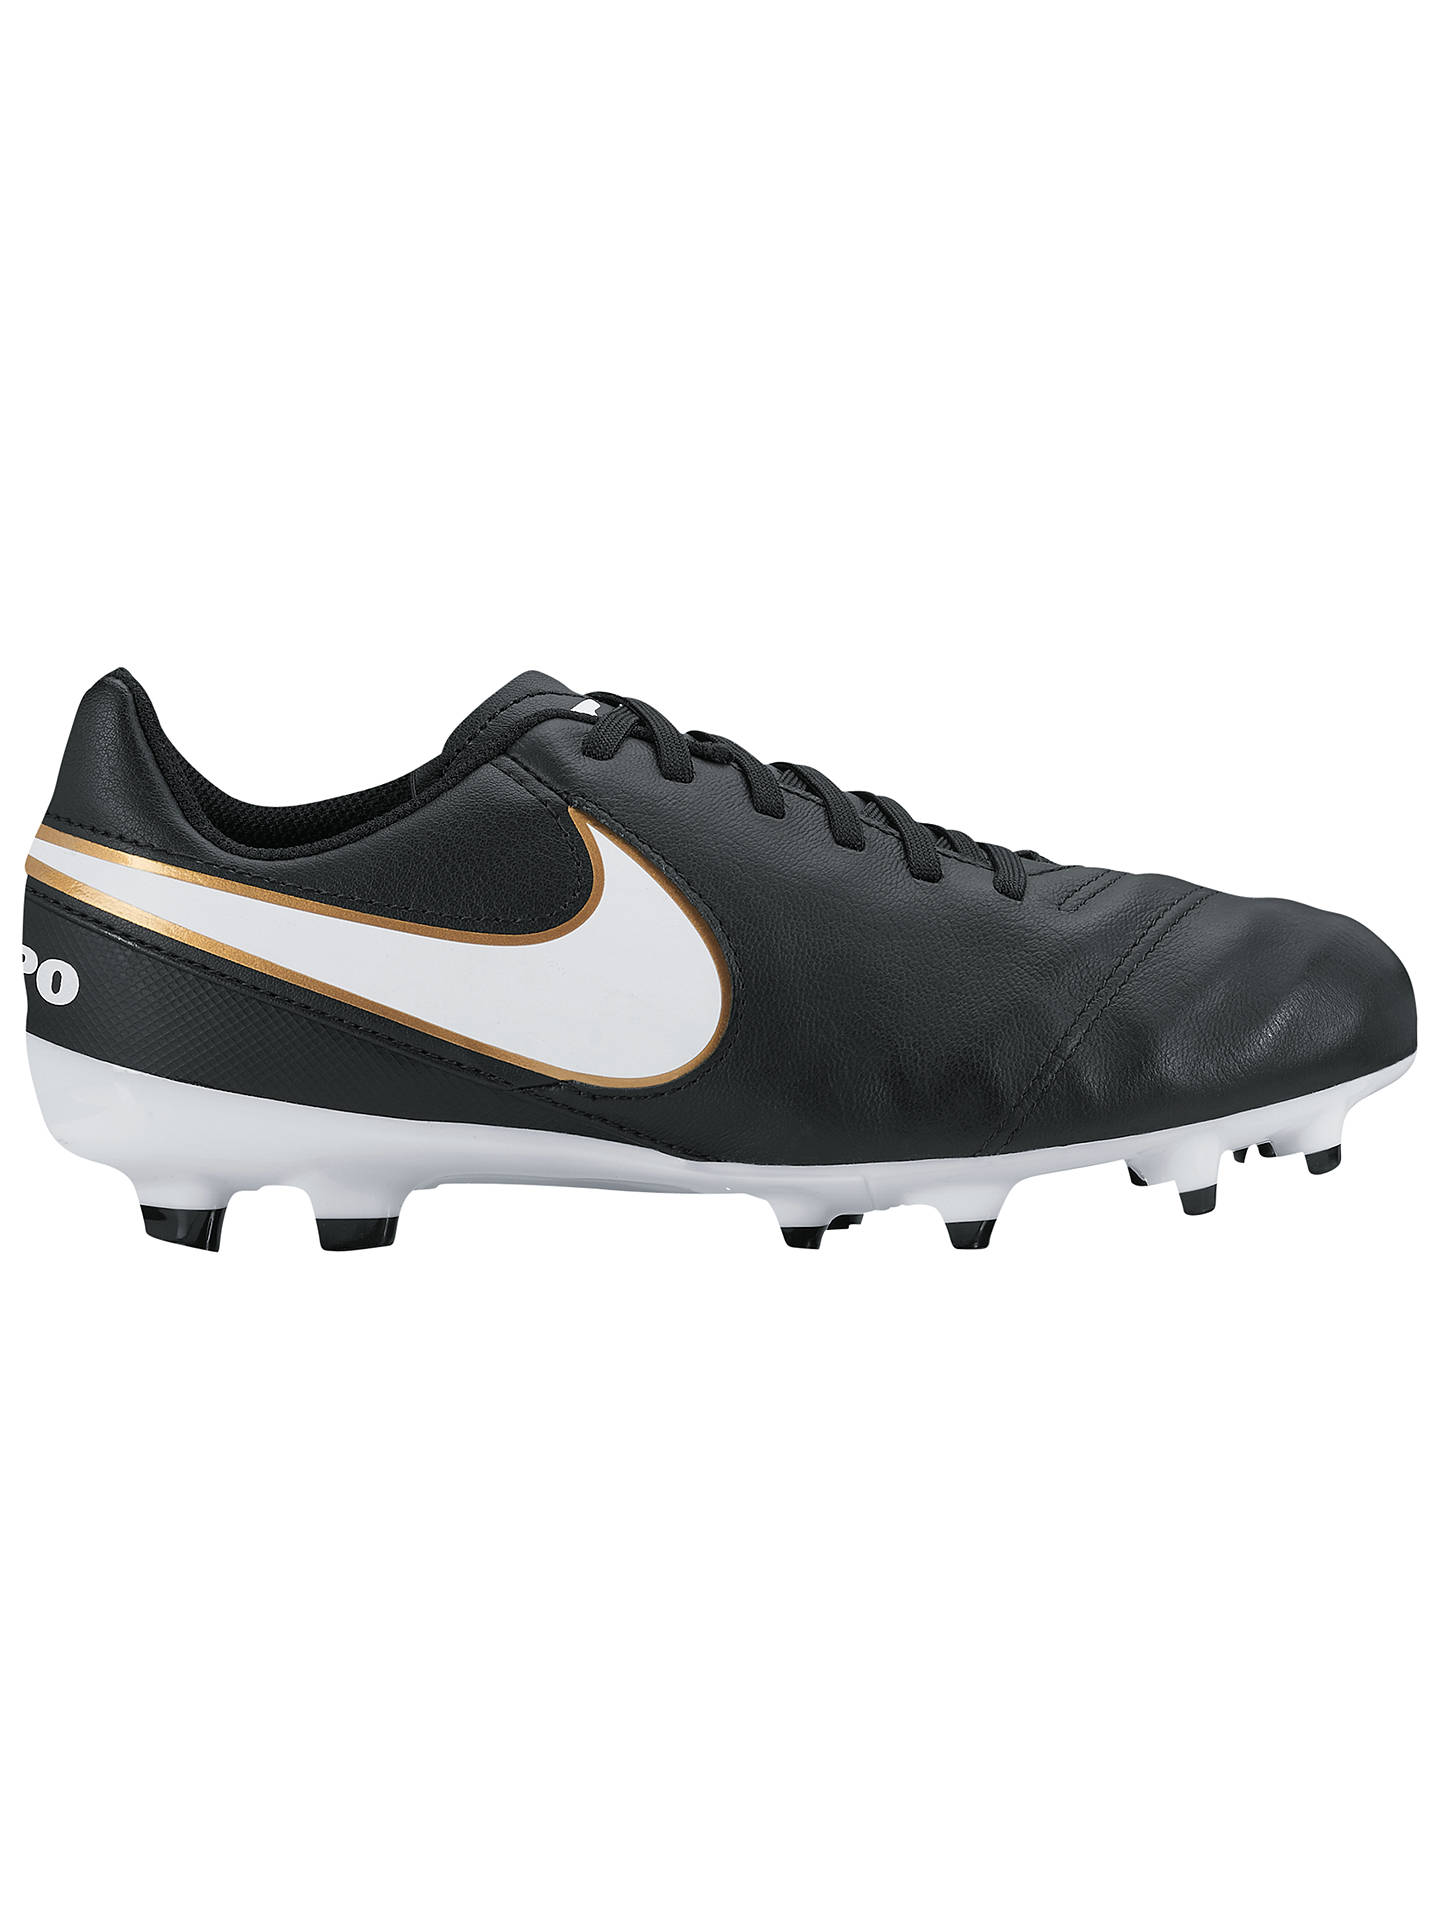 separation shoes a5a63 62232 Nike Children's Tiempo Legend Firm Ground Football Boots ...